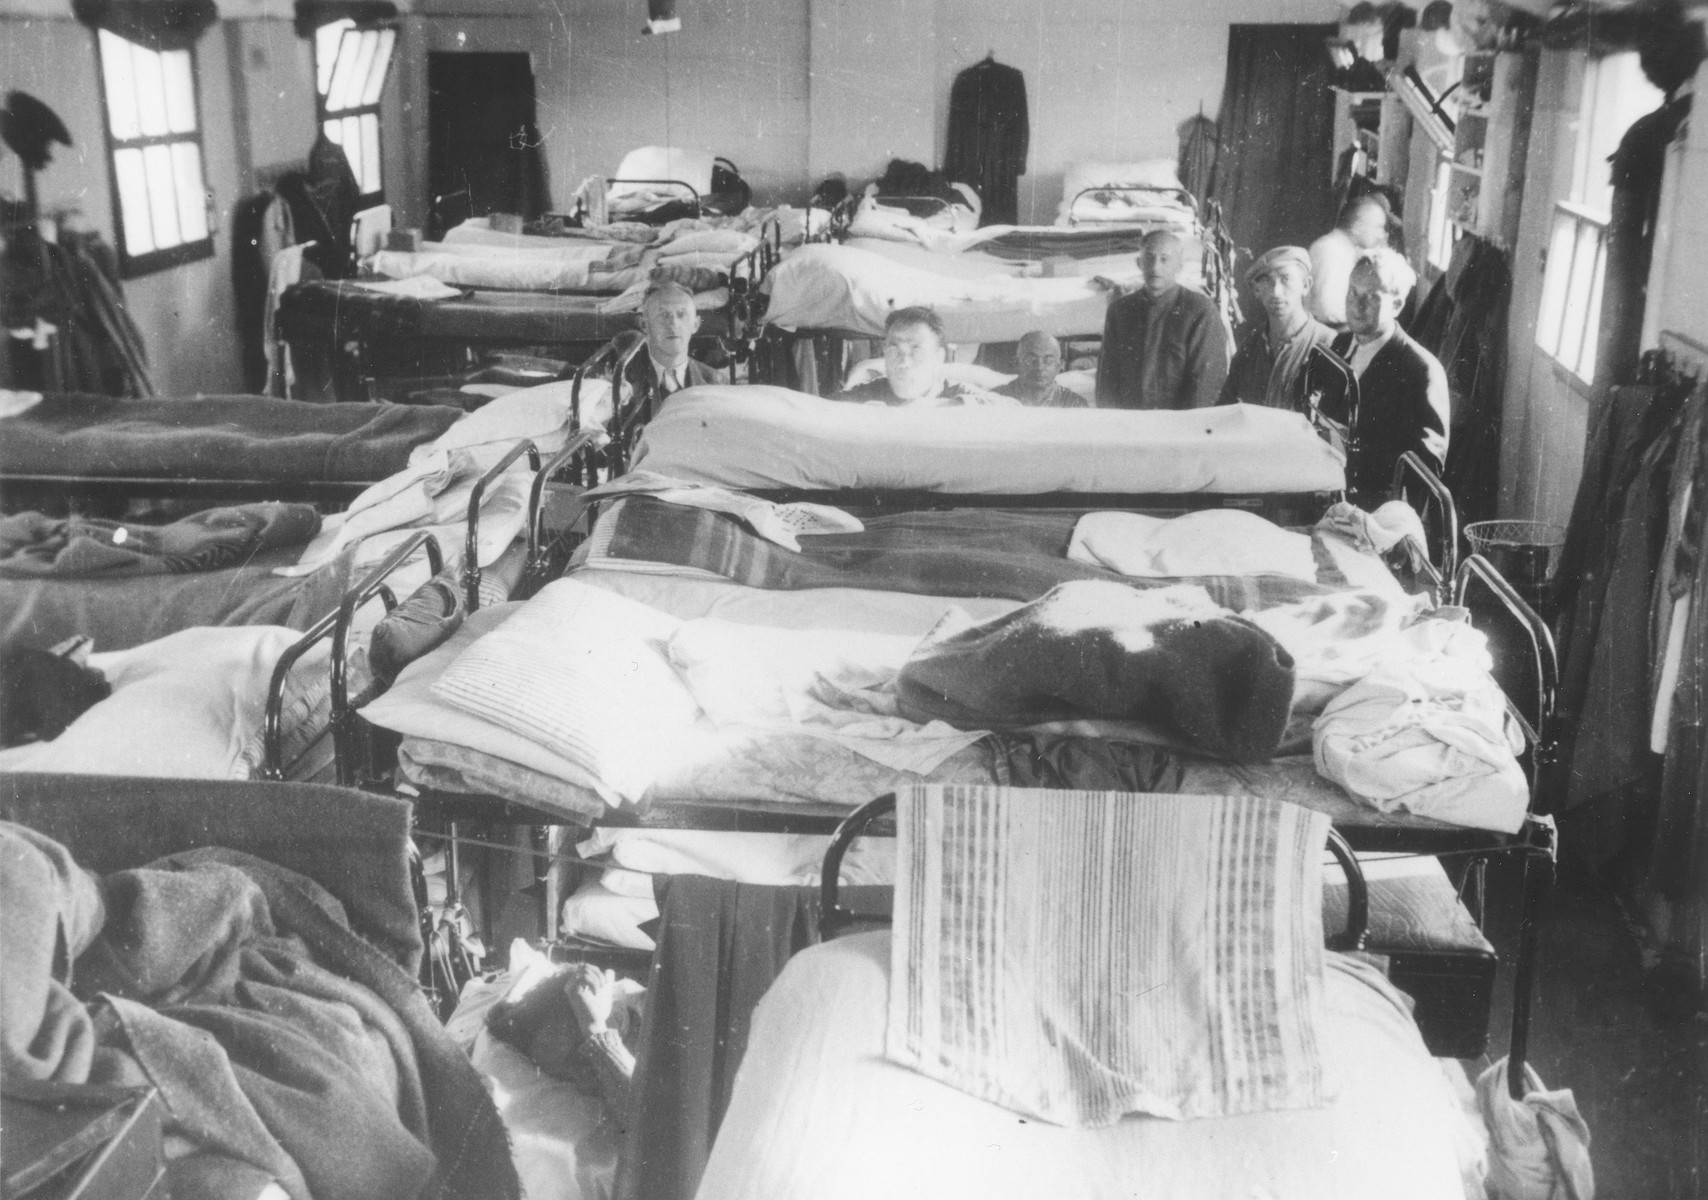 View of the interior of a crowded barracks in the Kitchener refugee camp in Richborough (Kent), England.